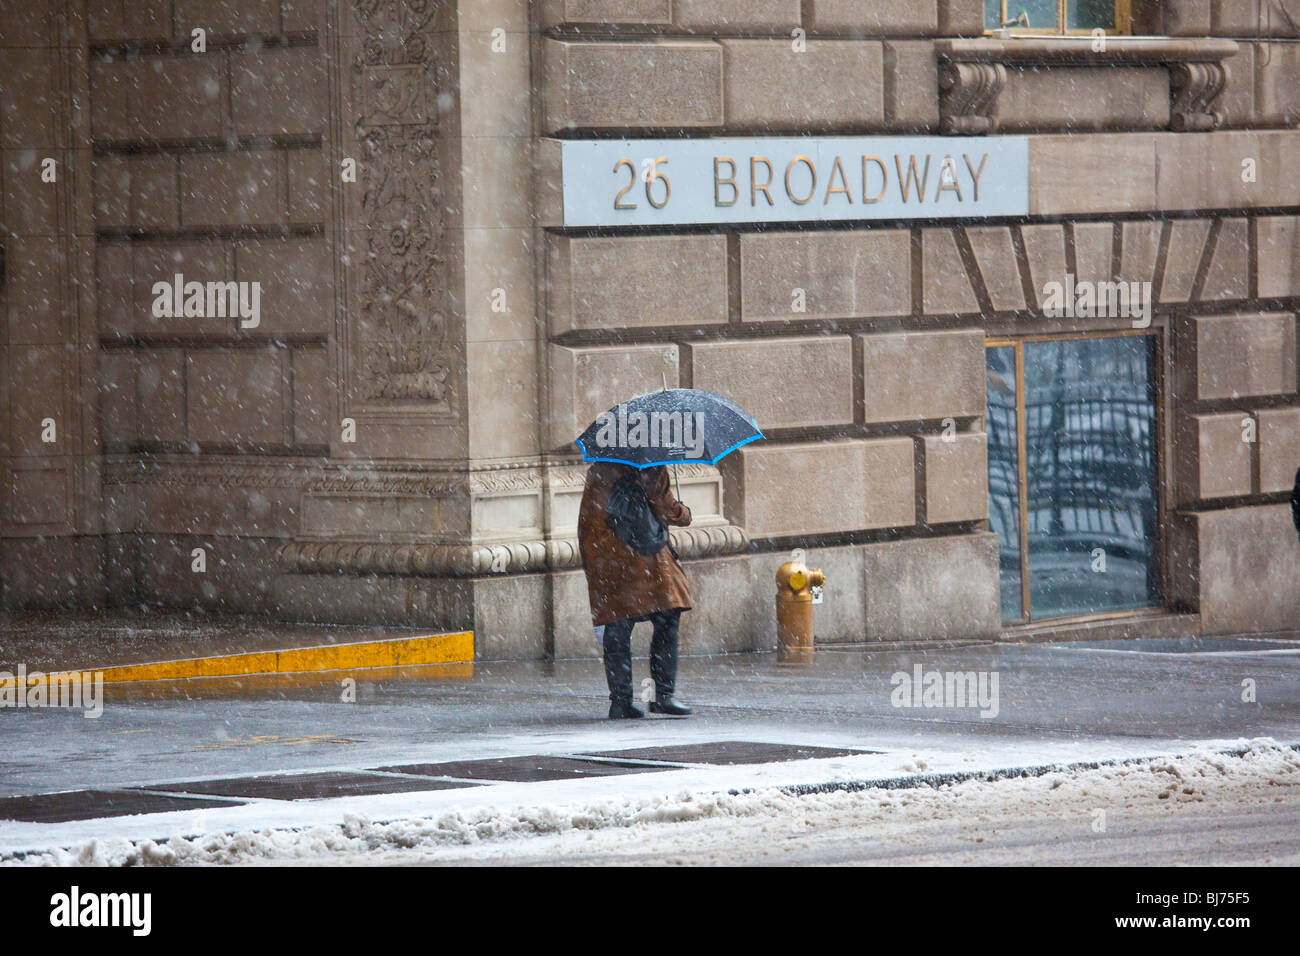 Snowing in lower Manhattan, New York City - Stock Image